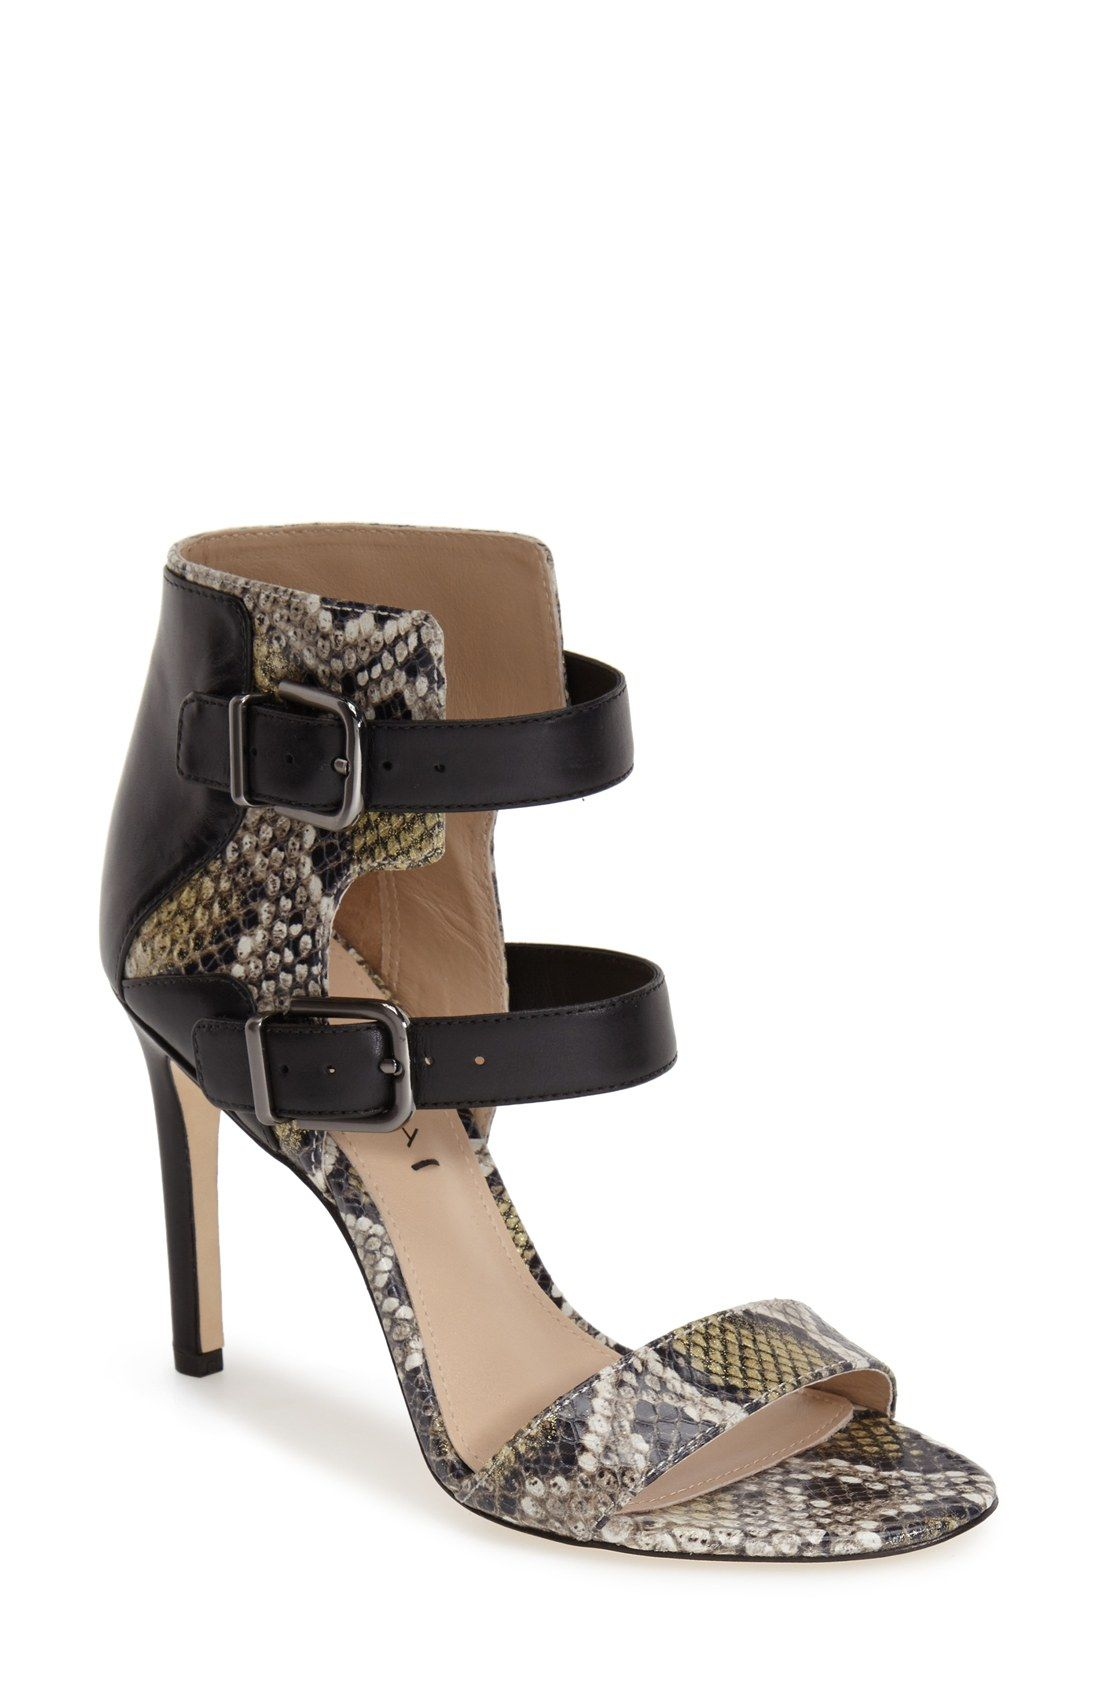 3295c1189b0 Free shipping and returns on Via Spiga  Evangeline  Ankle Cuff Sandal  (Women) at Nordstrom.com. A duo of buckled straps details the ankle of this  glam cuff ...